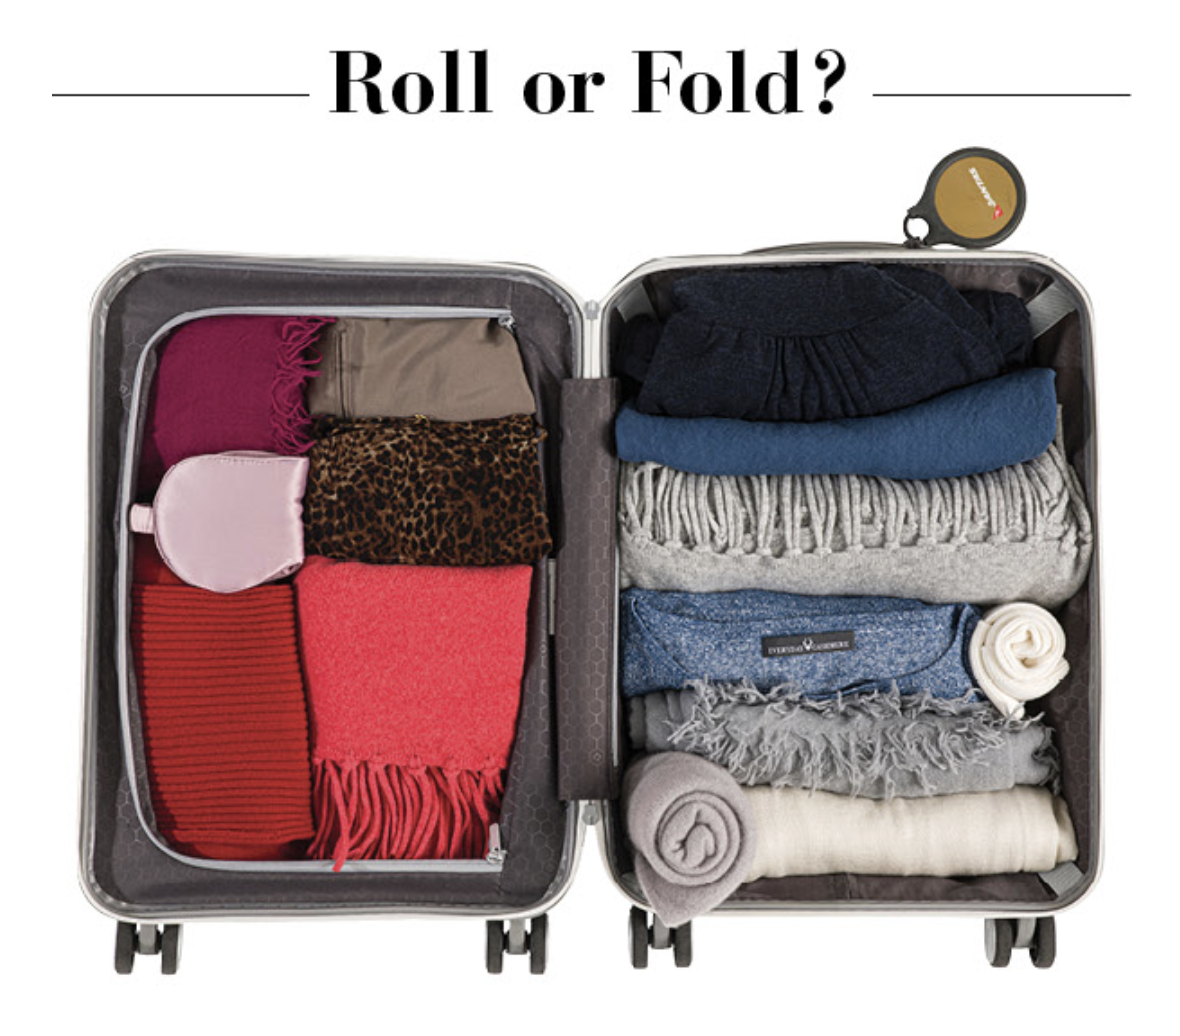 ROLL OR FOLD?